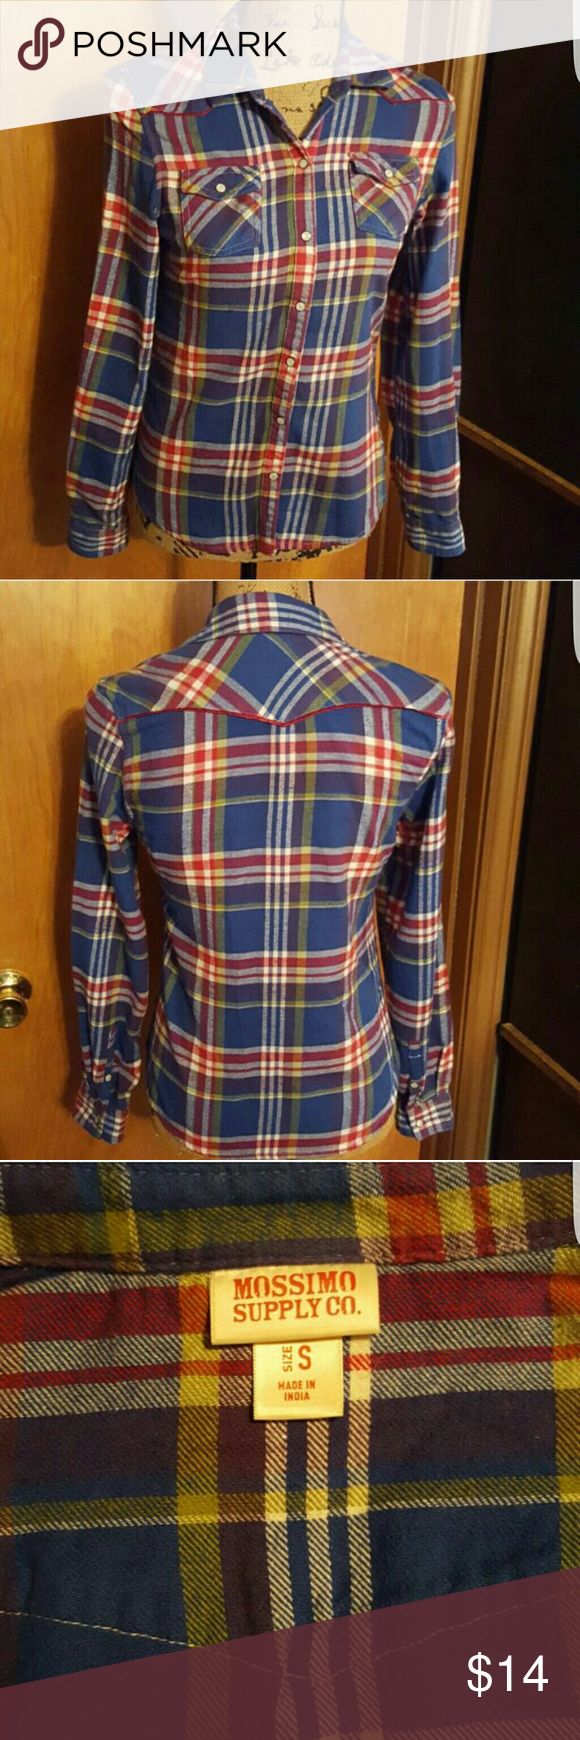 Flannel shirts yellow  NEW wo tags Mossimo plaid flannel shirt  Plaid flannel Flannel